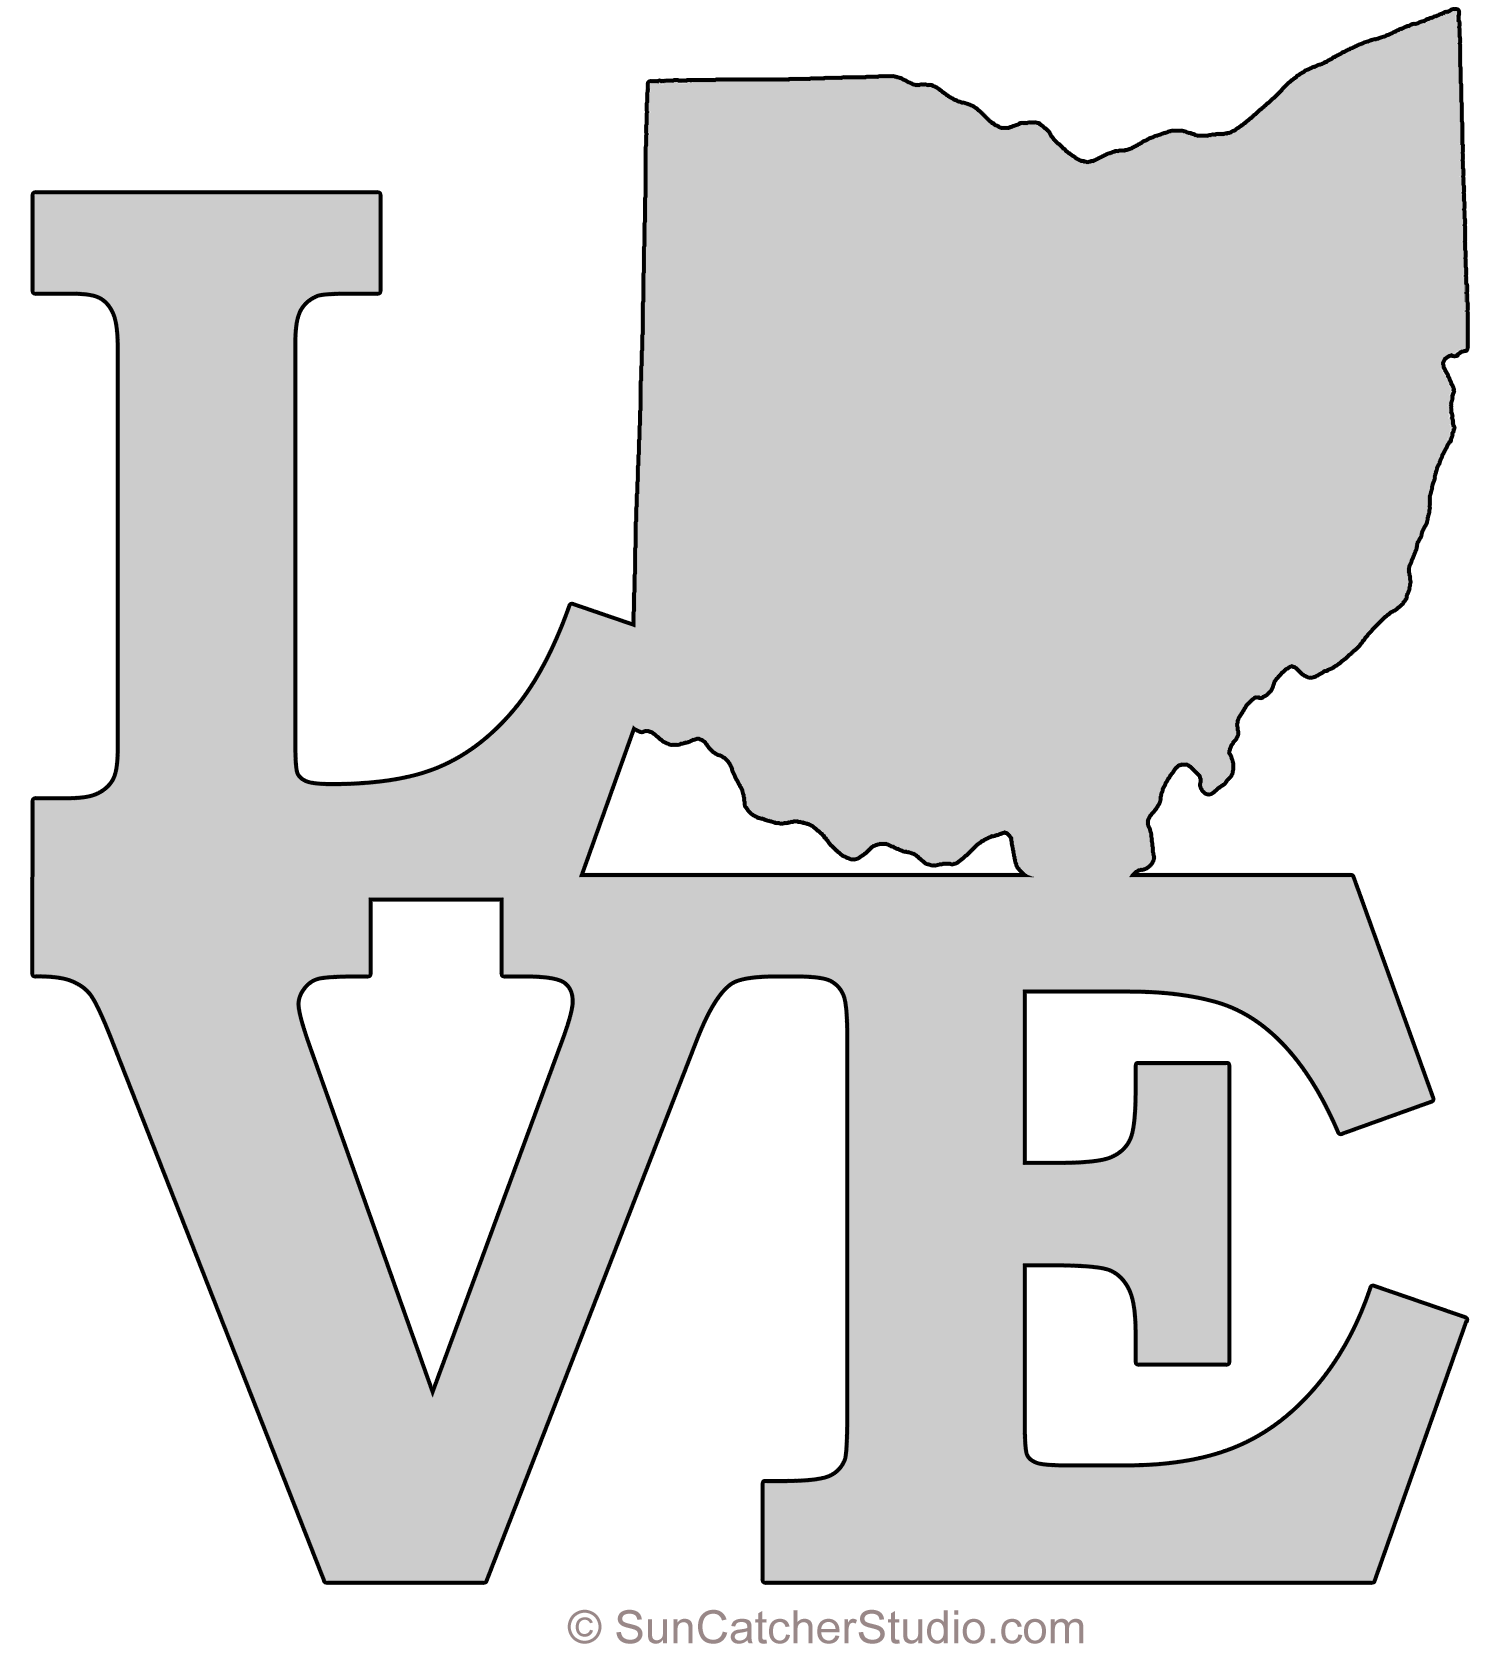 photograph relating to Free Printable Ohio Will Forms named Ohio - Map Define, Printable Place, Condition, Stencil, Behavior